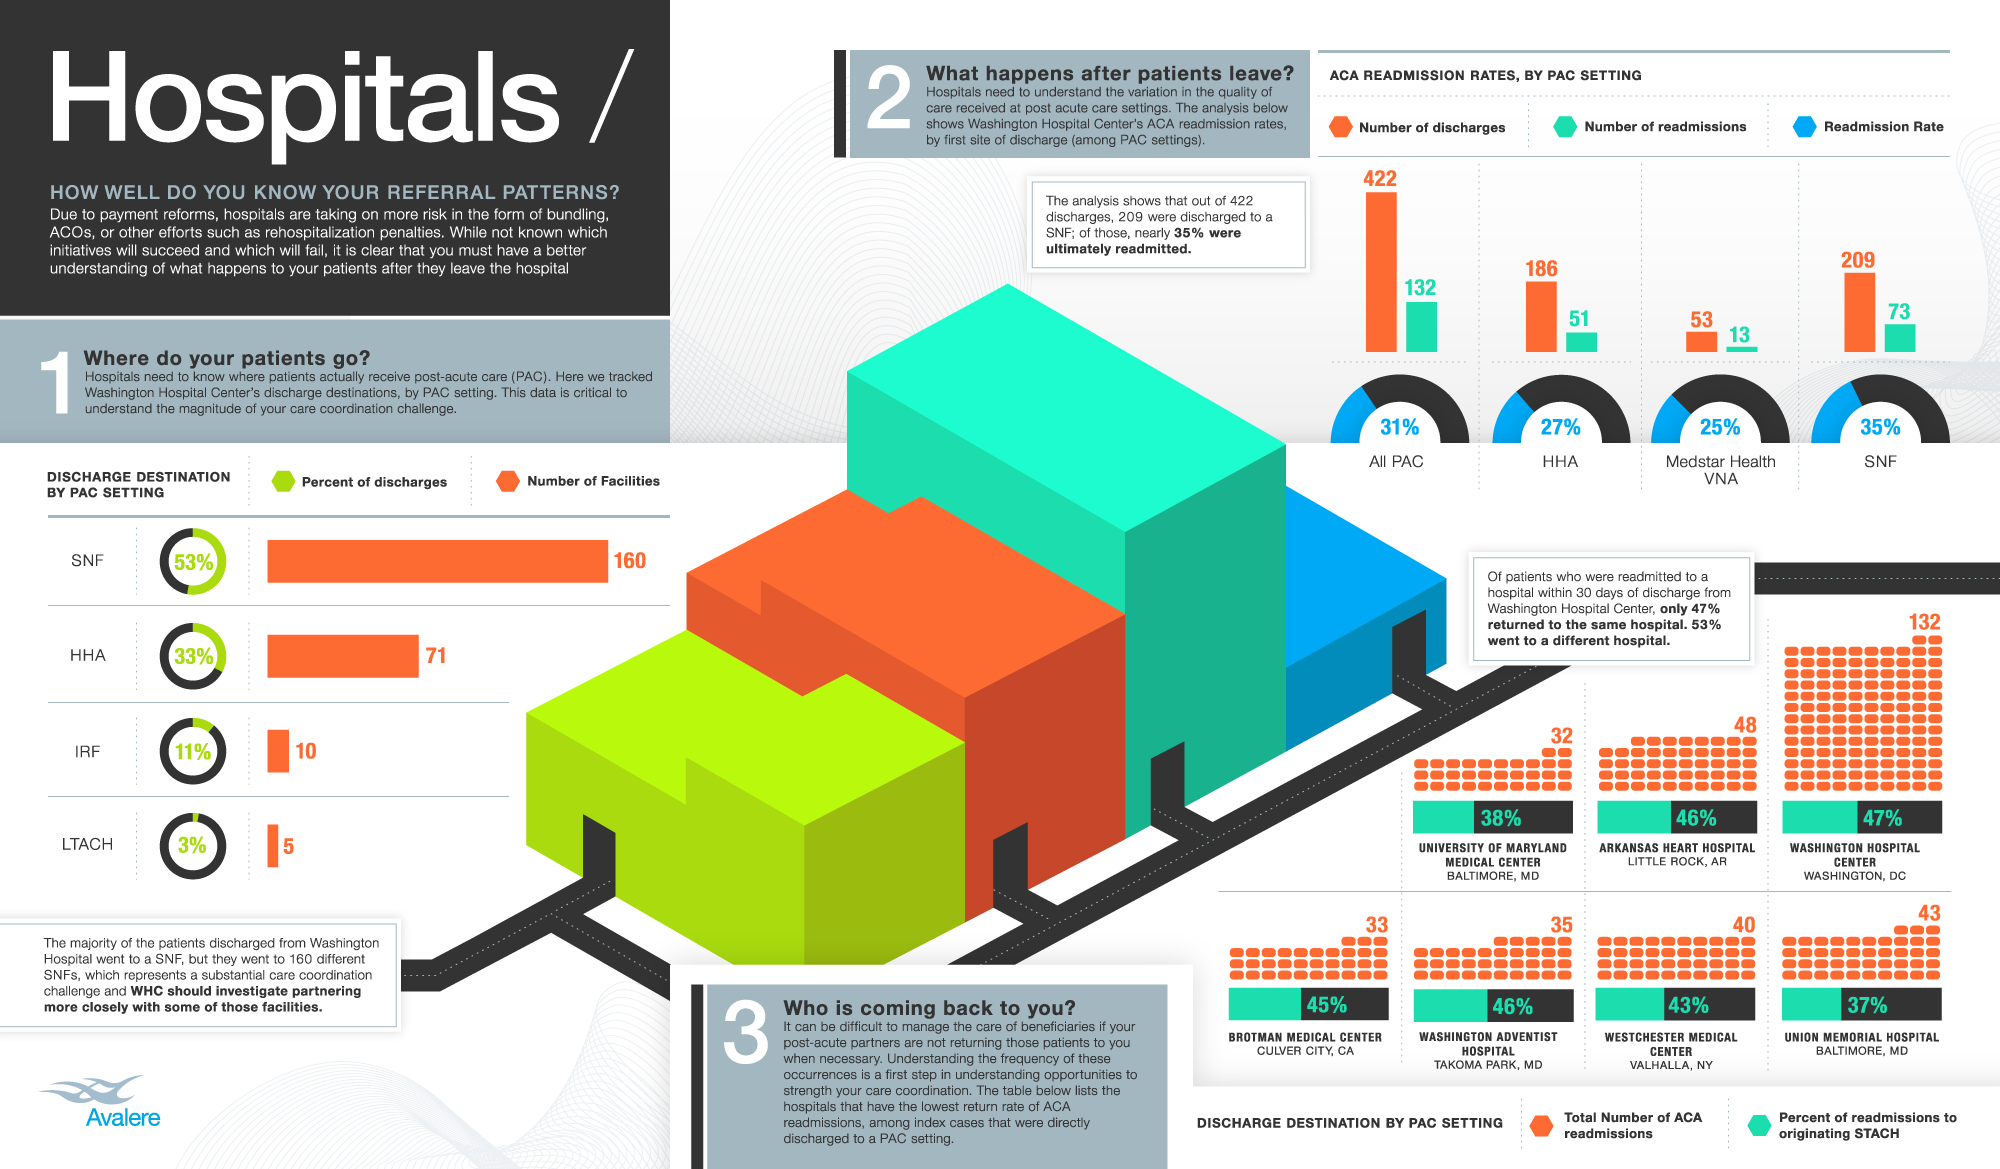 Infographic: Hospitals: How Well Do You Know Your Referral Patterns?